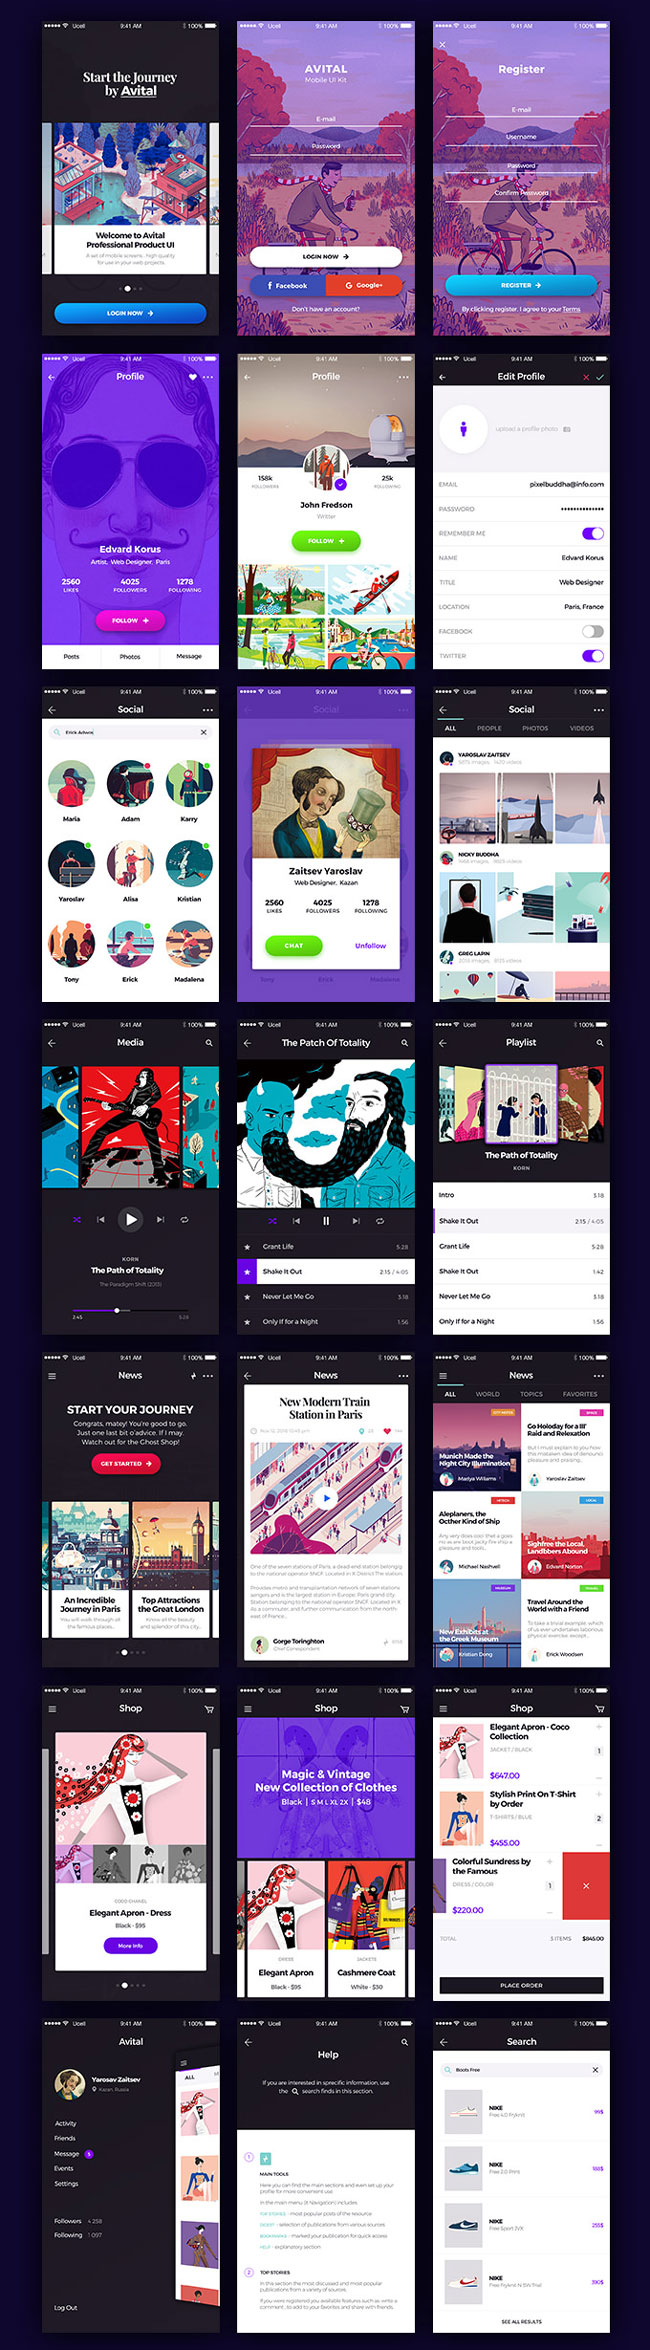 Avital-Free-Mobile-UI-Kit-PSD-and-Sketch-Preview